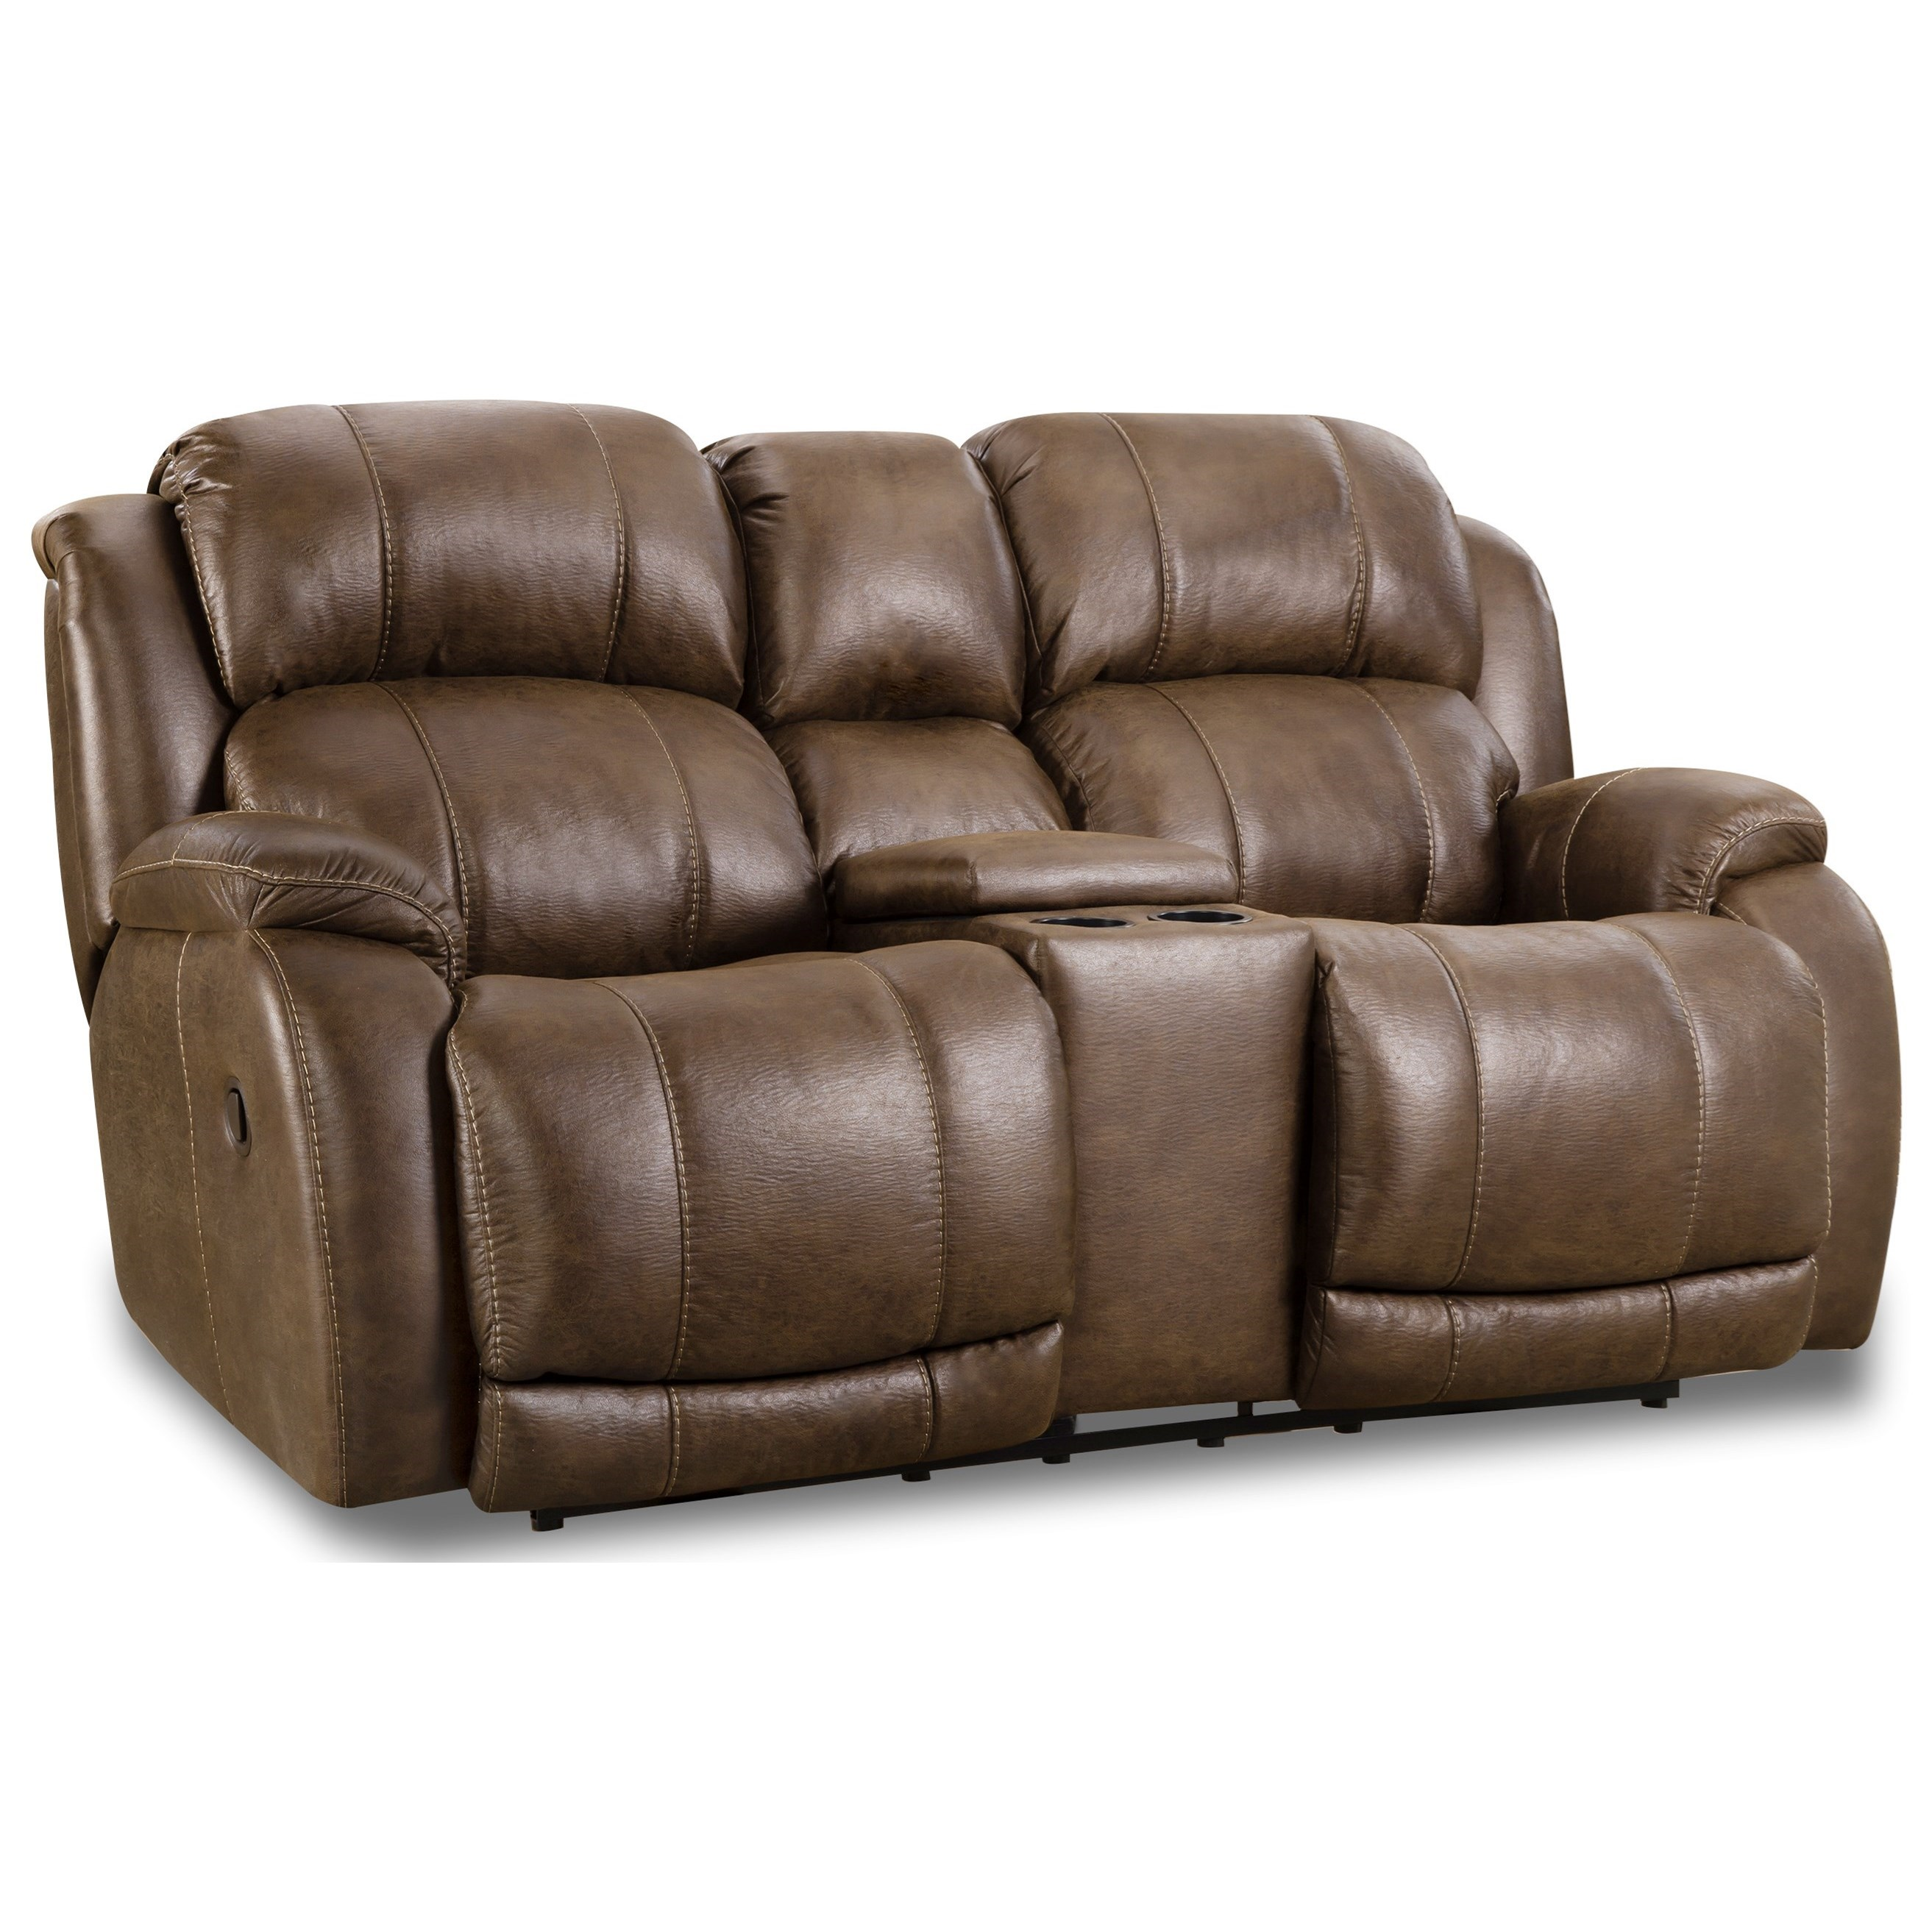 Denali Power Reclining Console Loveseat by HomeStretch at Story & Lee Furniture